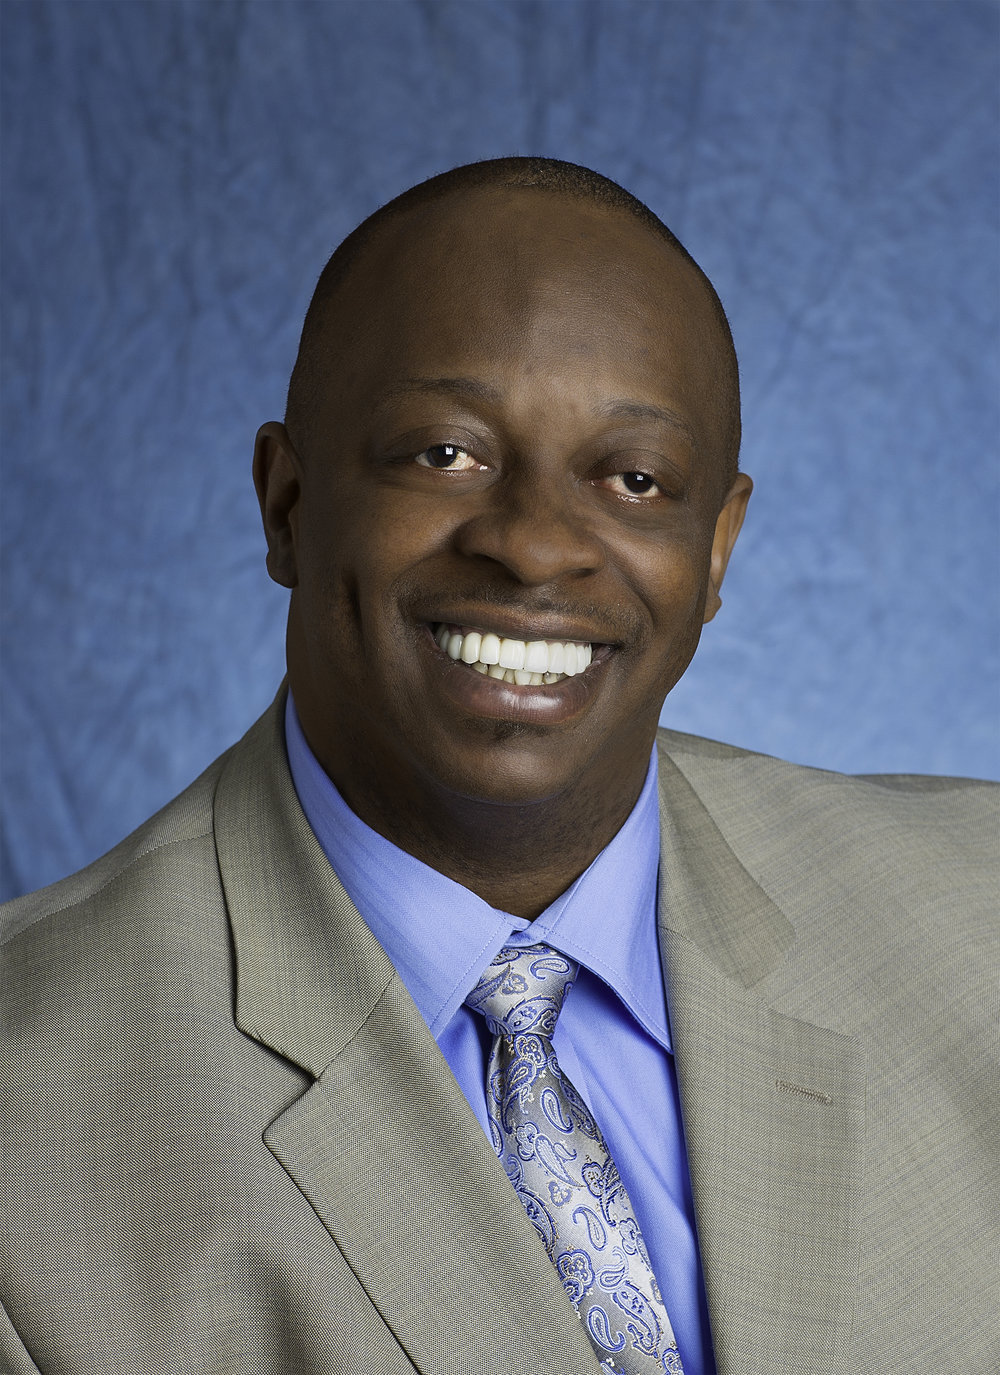 Darnell Smith is North Florida Market President for Florida Blue, a leader in the state's health industry.